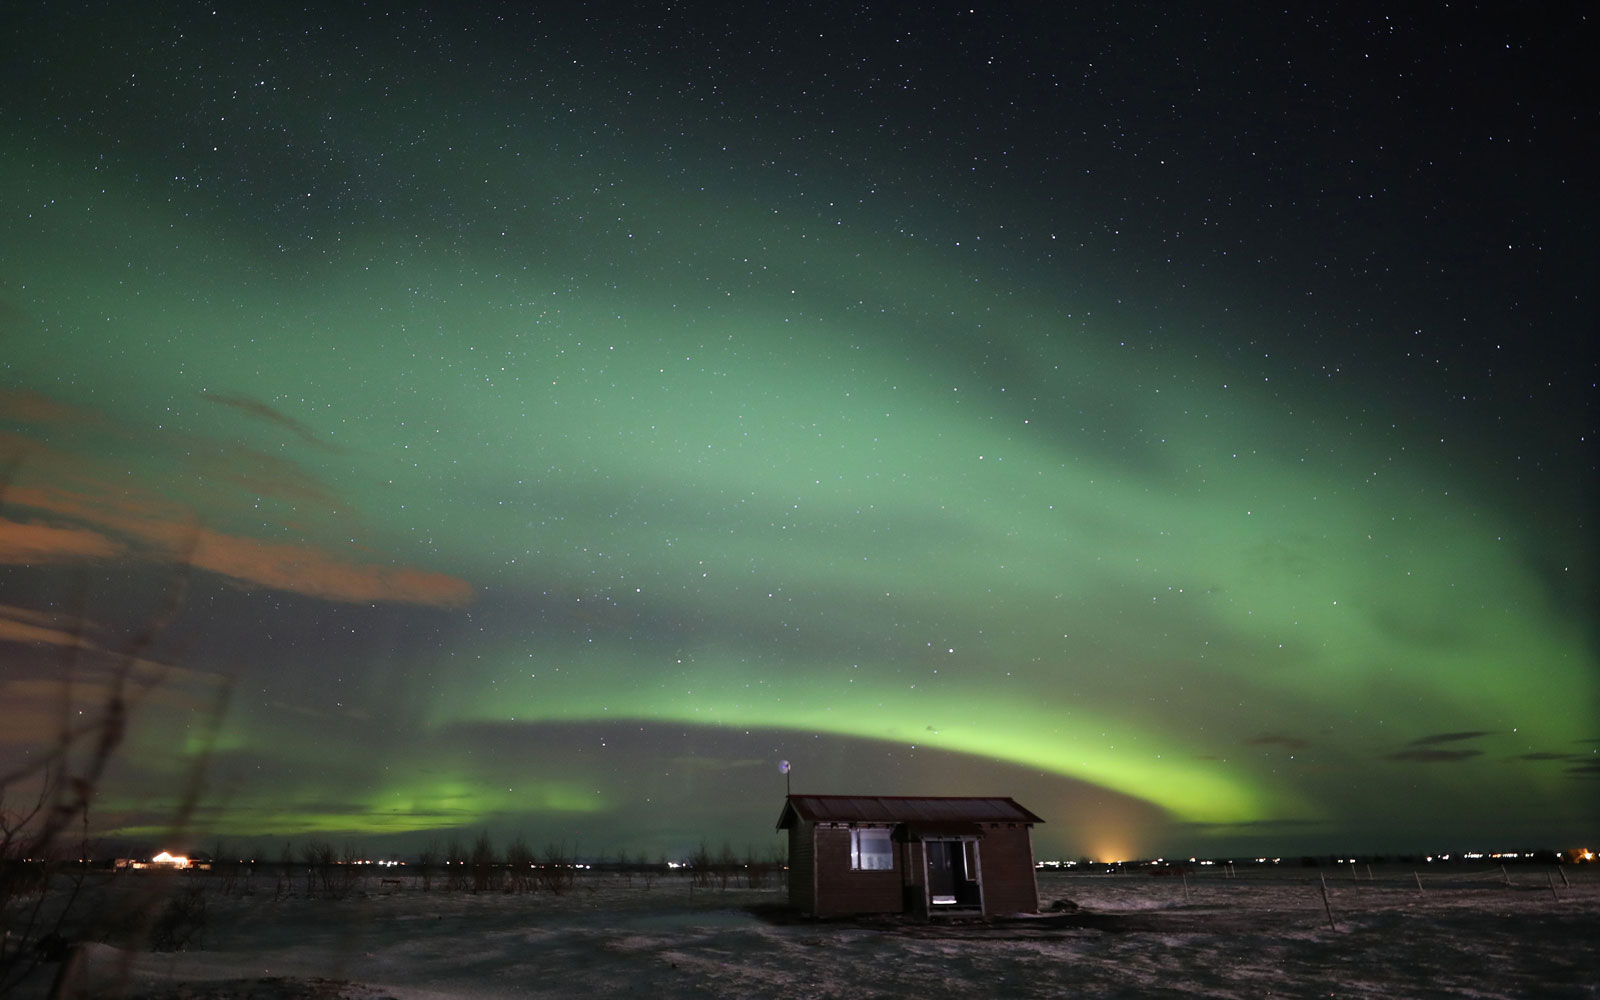 Space travel astronomy space exploration travel for Chance of seeing northern lights tonight